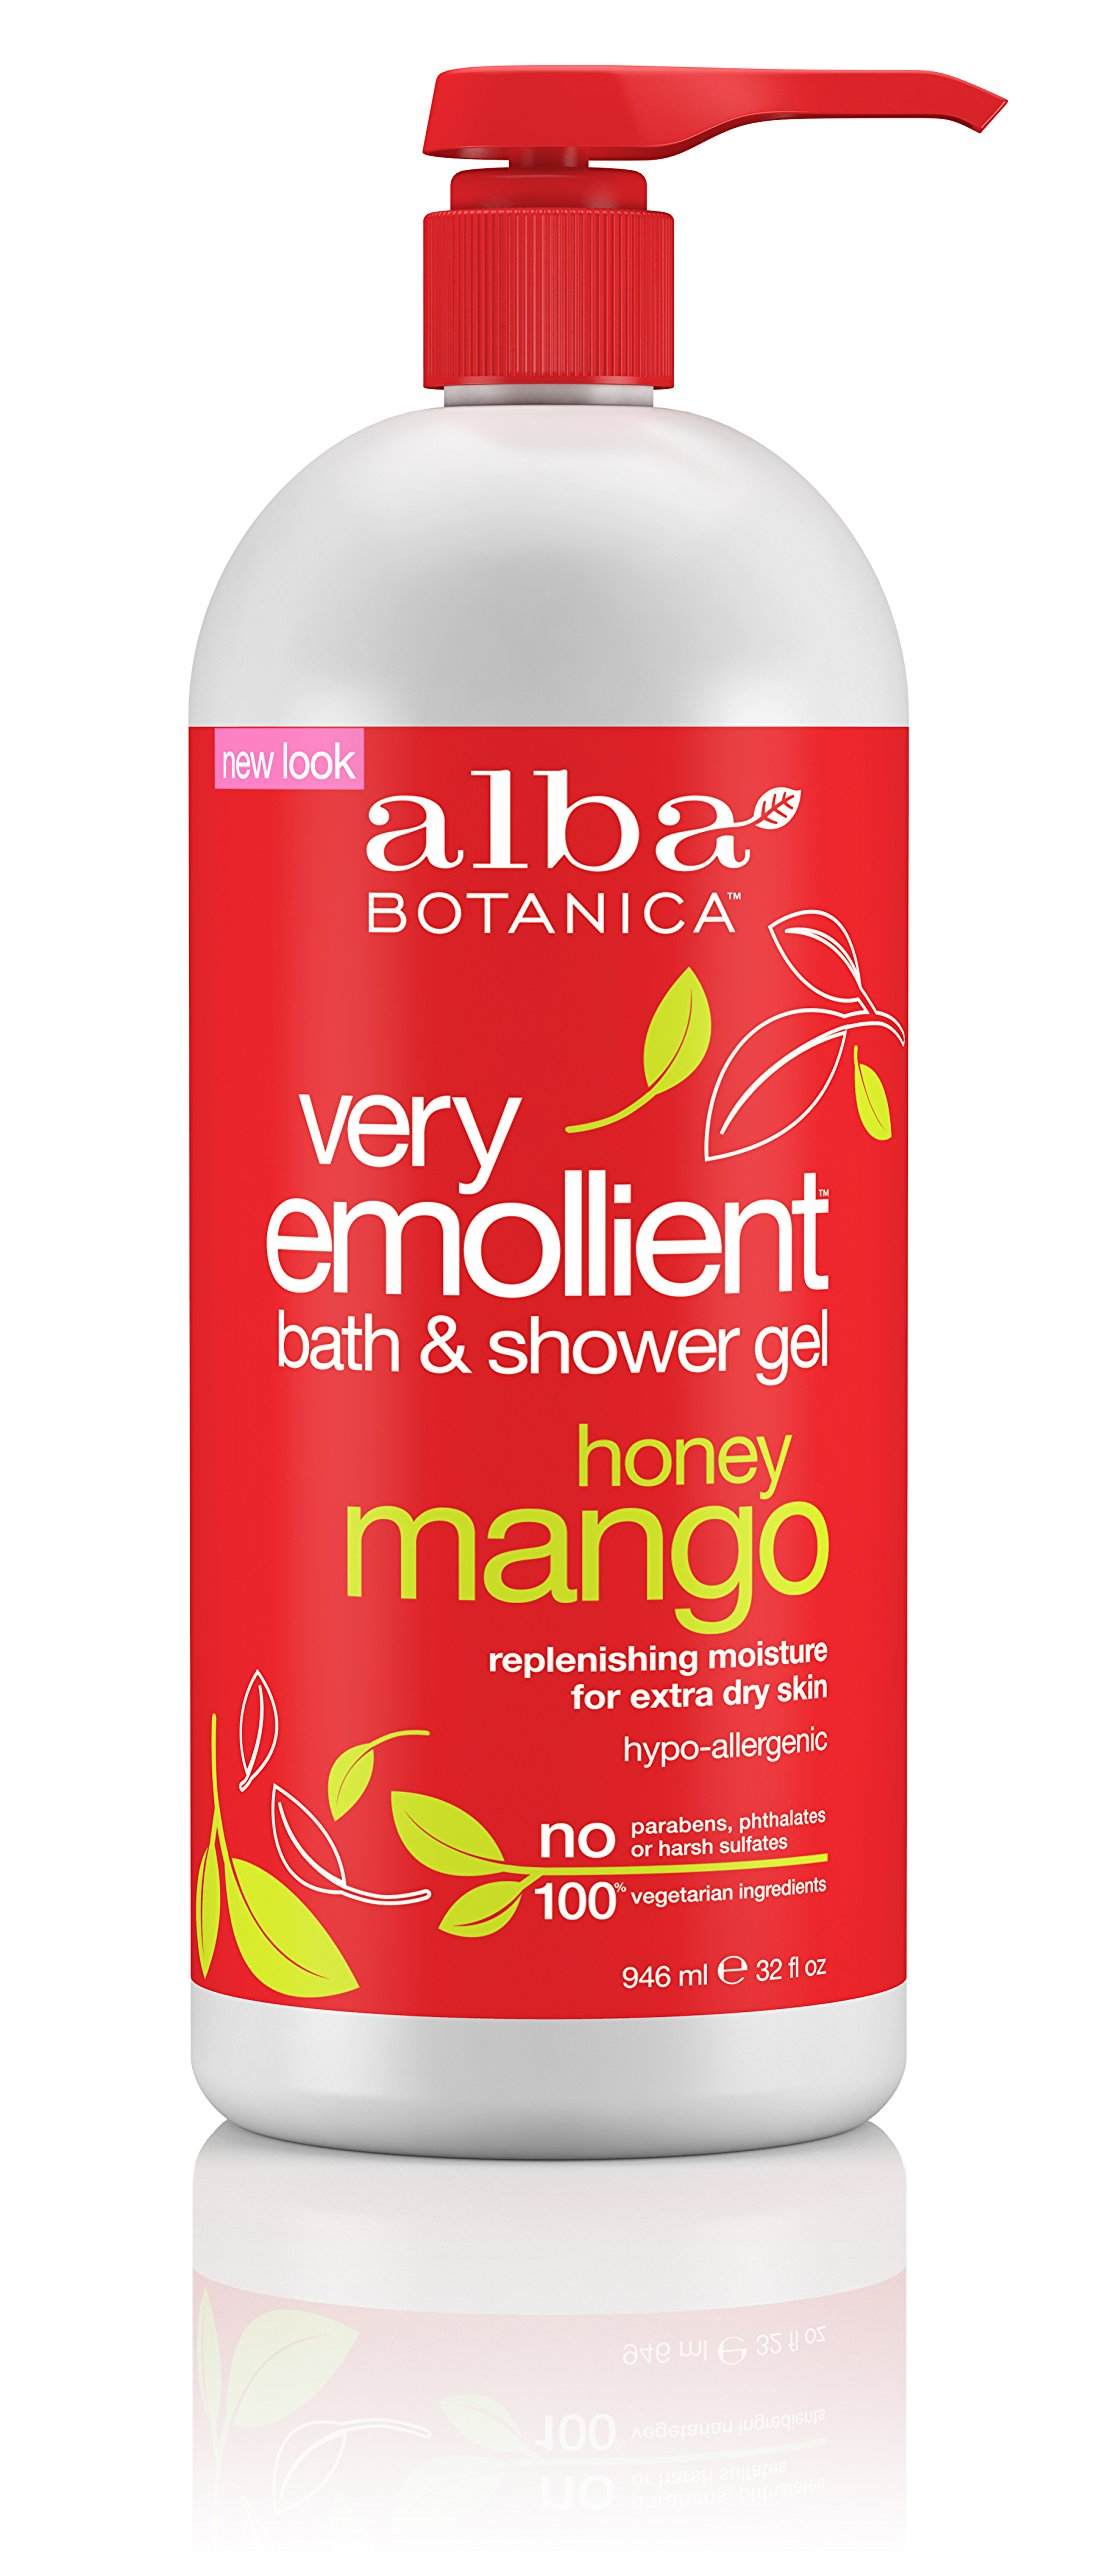 alba botanica very emollient body lotion review